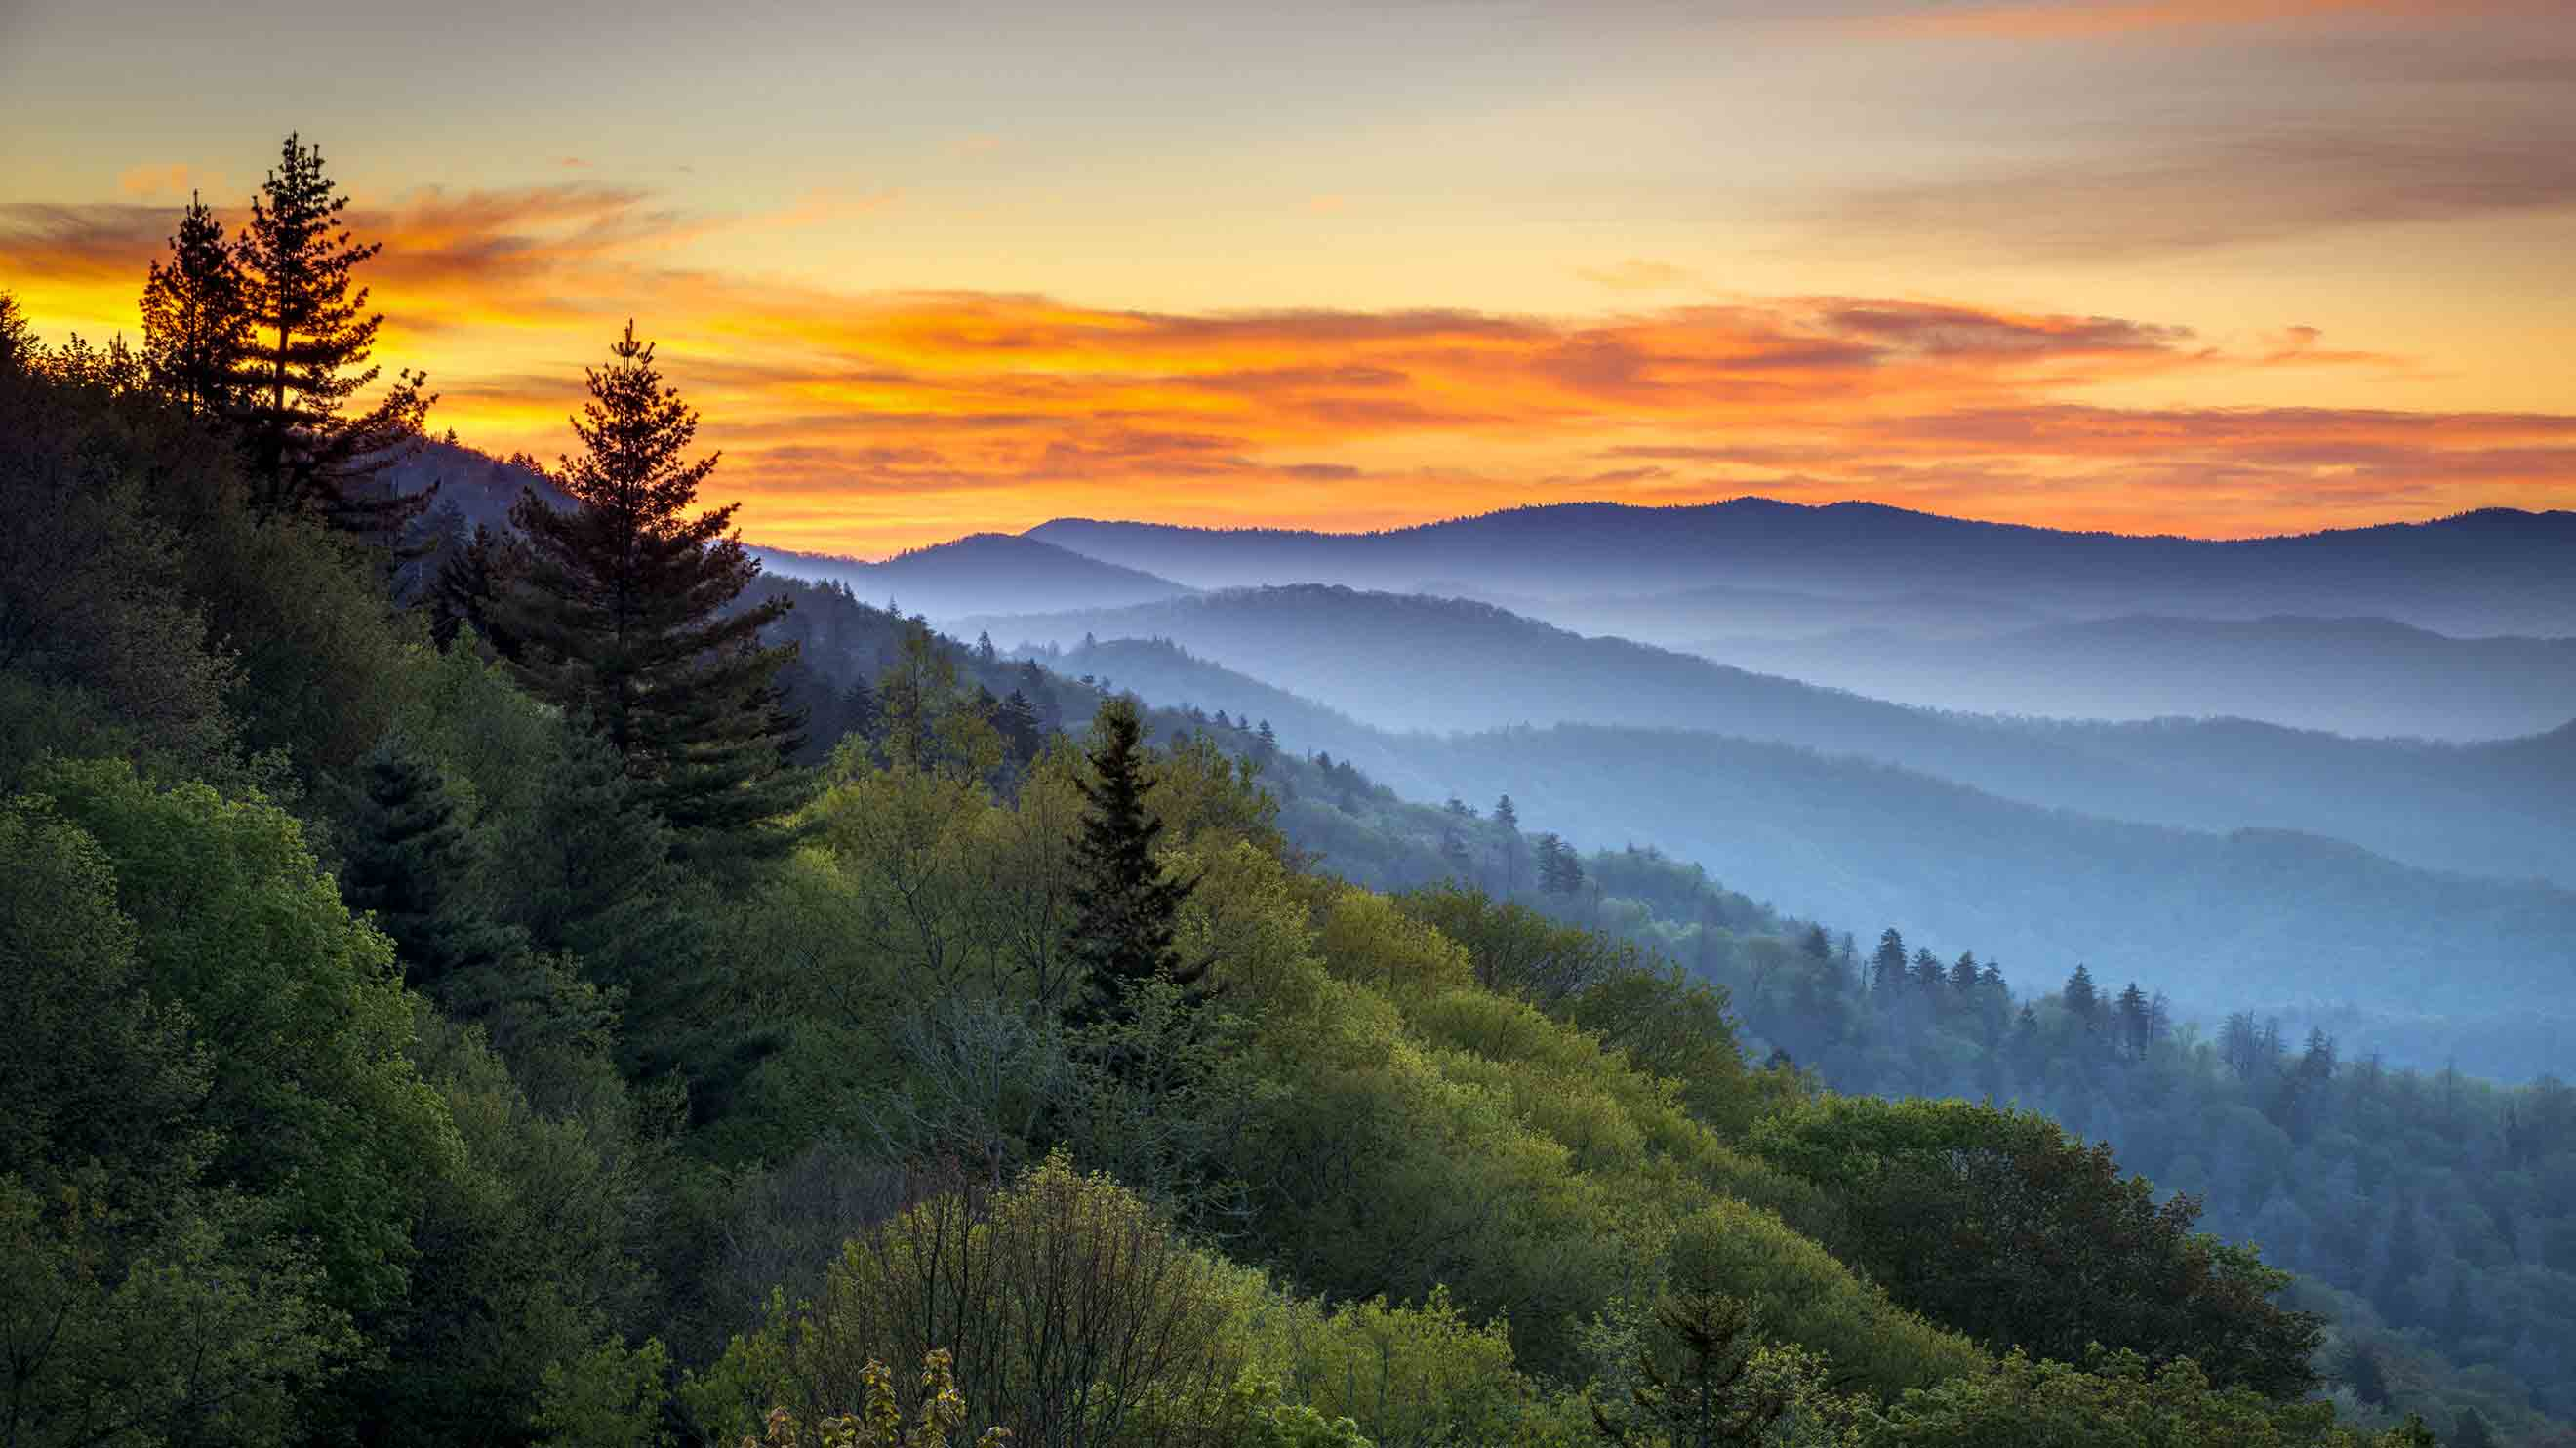 Absorbing Cherokeefor 2018 Expedia Hotels Closest To Smoky Mountains National Park Smokey Mountain S Jobs Smokey Mountain S Reviews Hotels Closest To Smoky Mountains National Park houzz 01 Smokey Mountain Tops